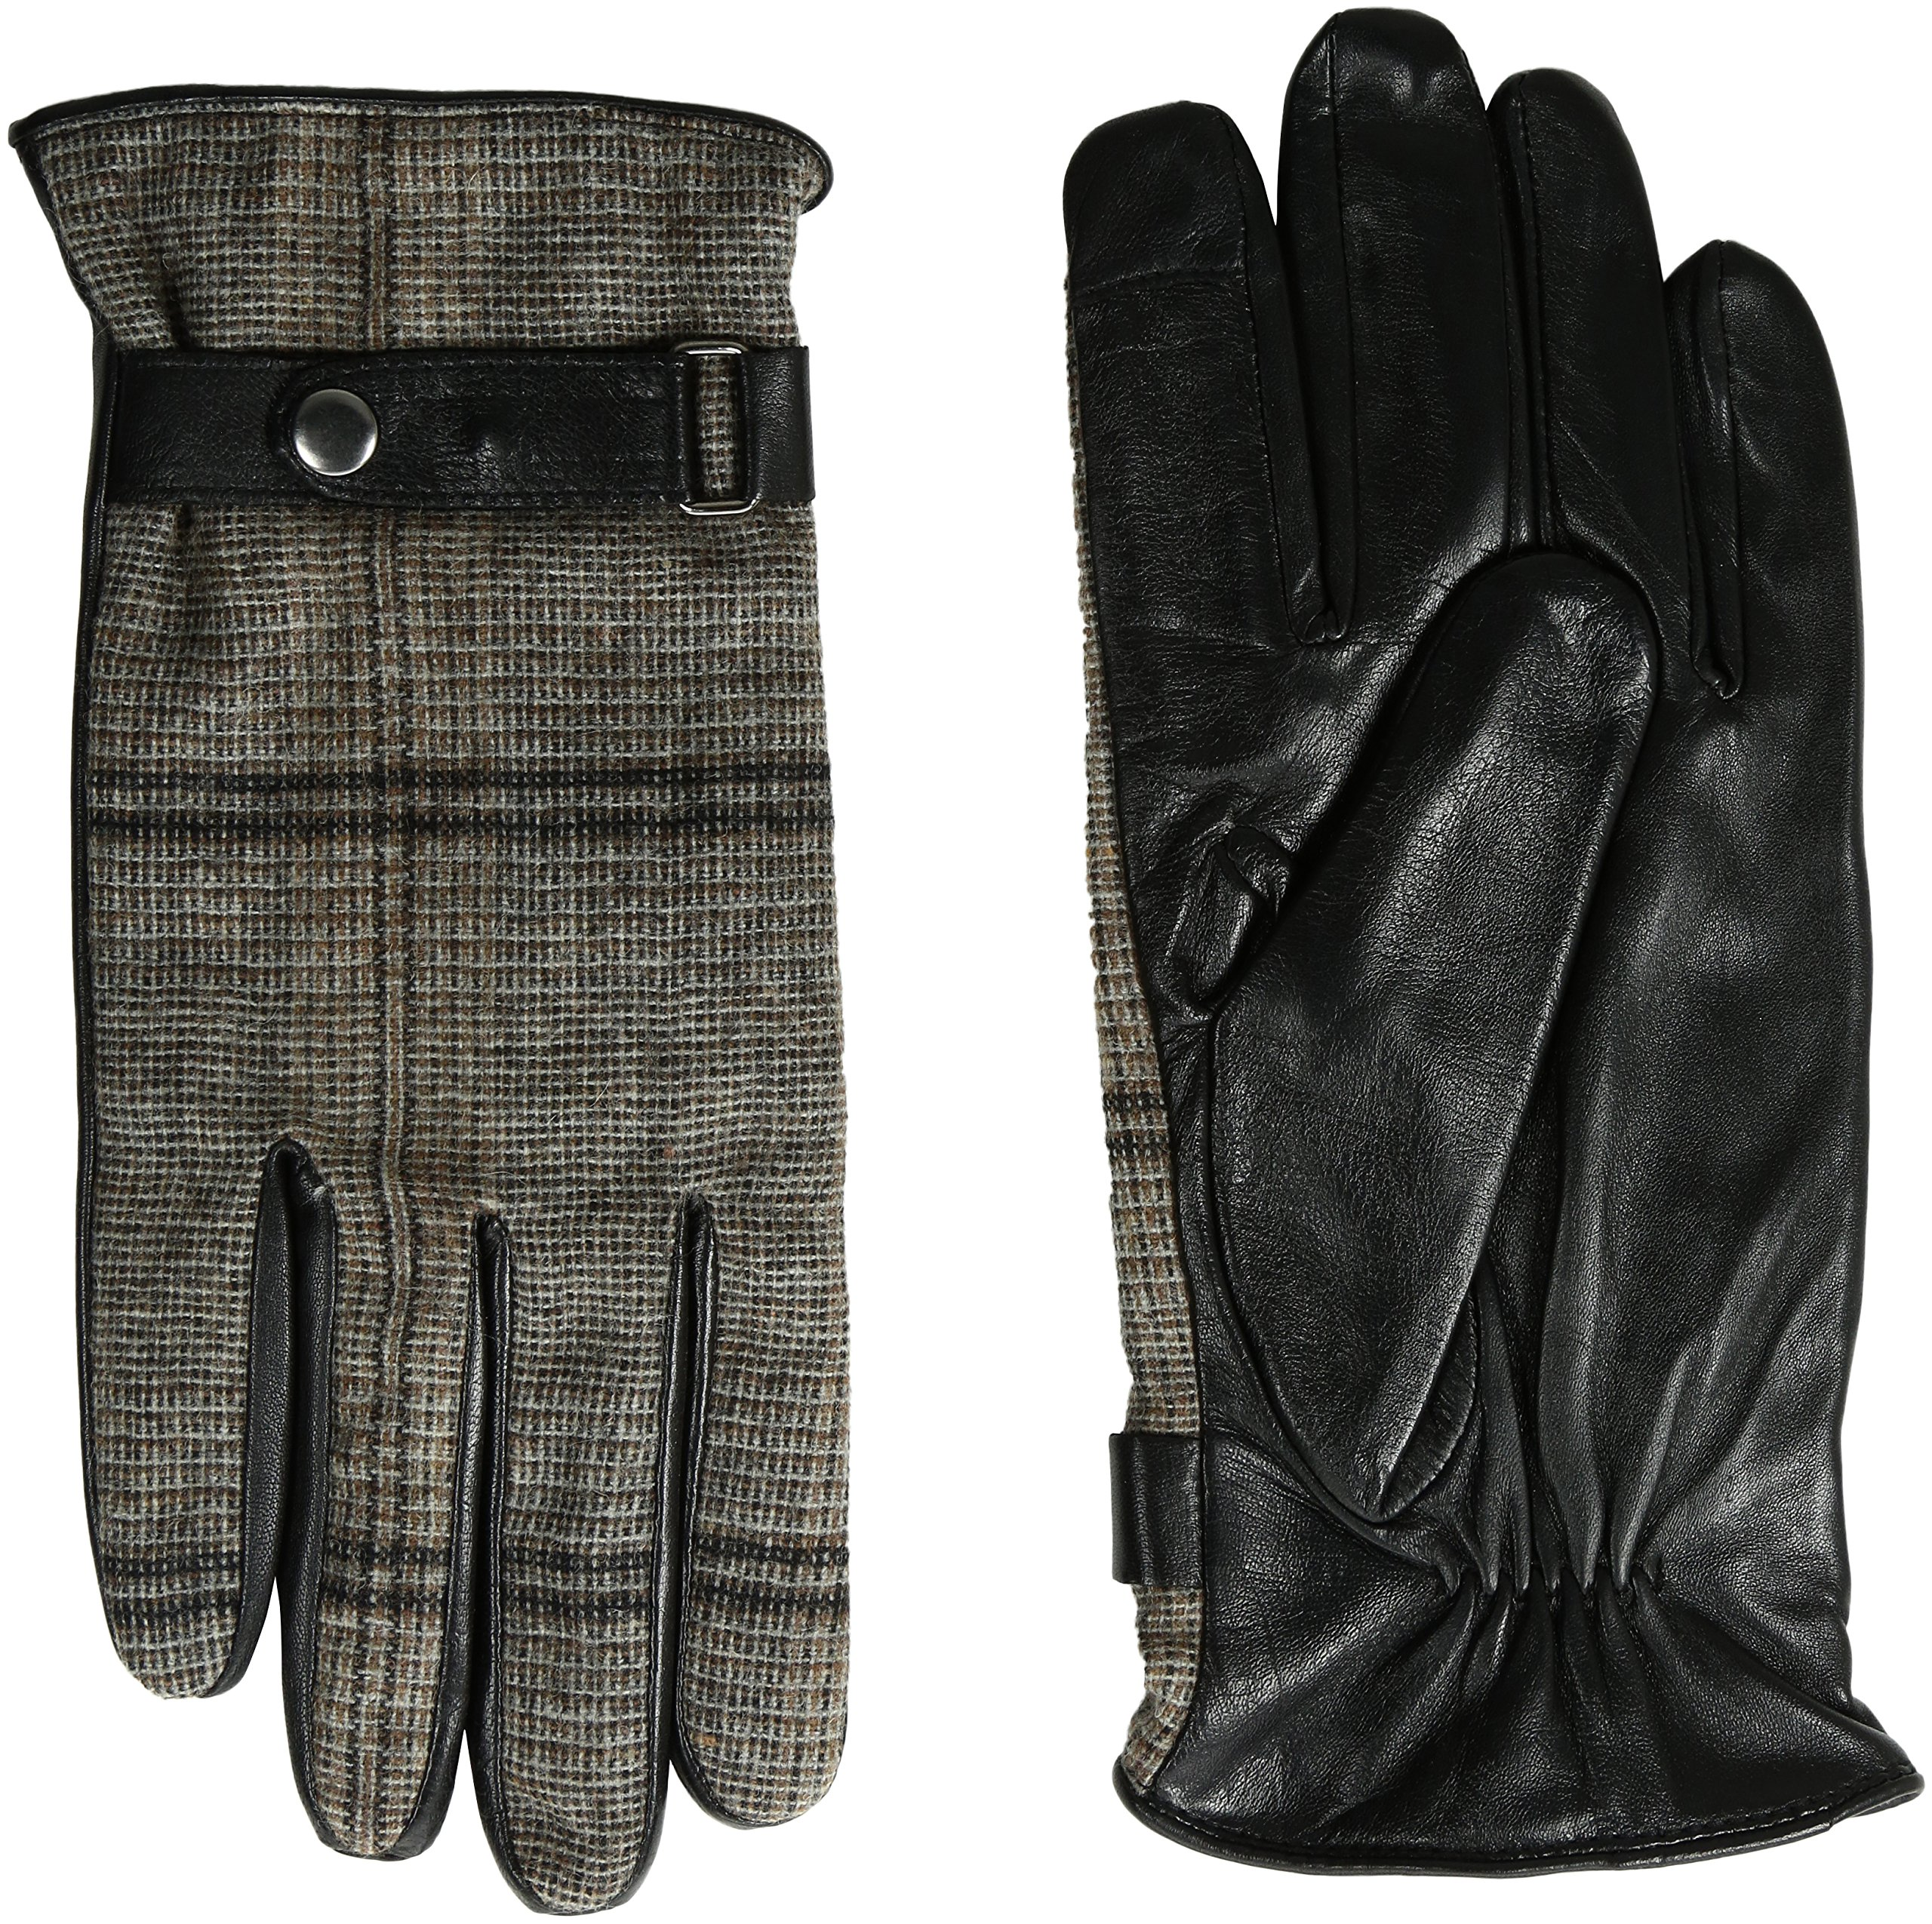 GII Men's Tweed and Fine Leather Touchscreen Gloves, Black/Tweed, Medium